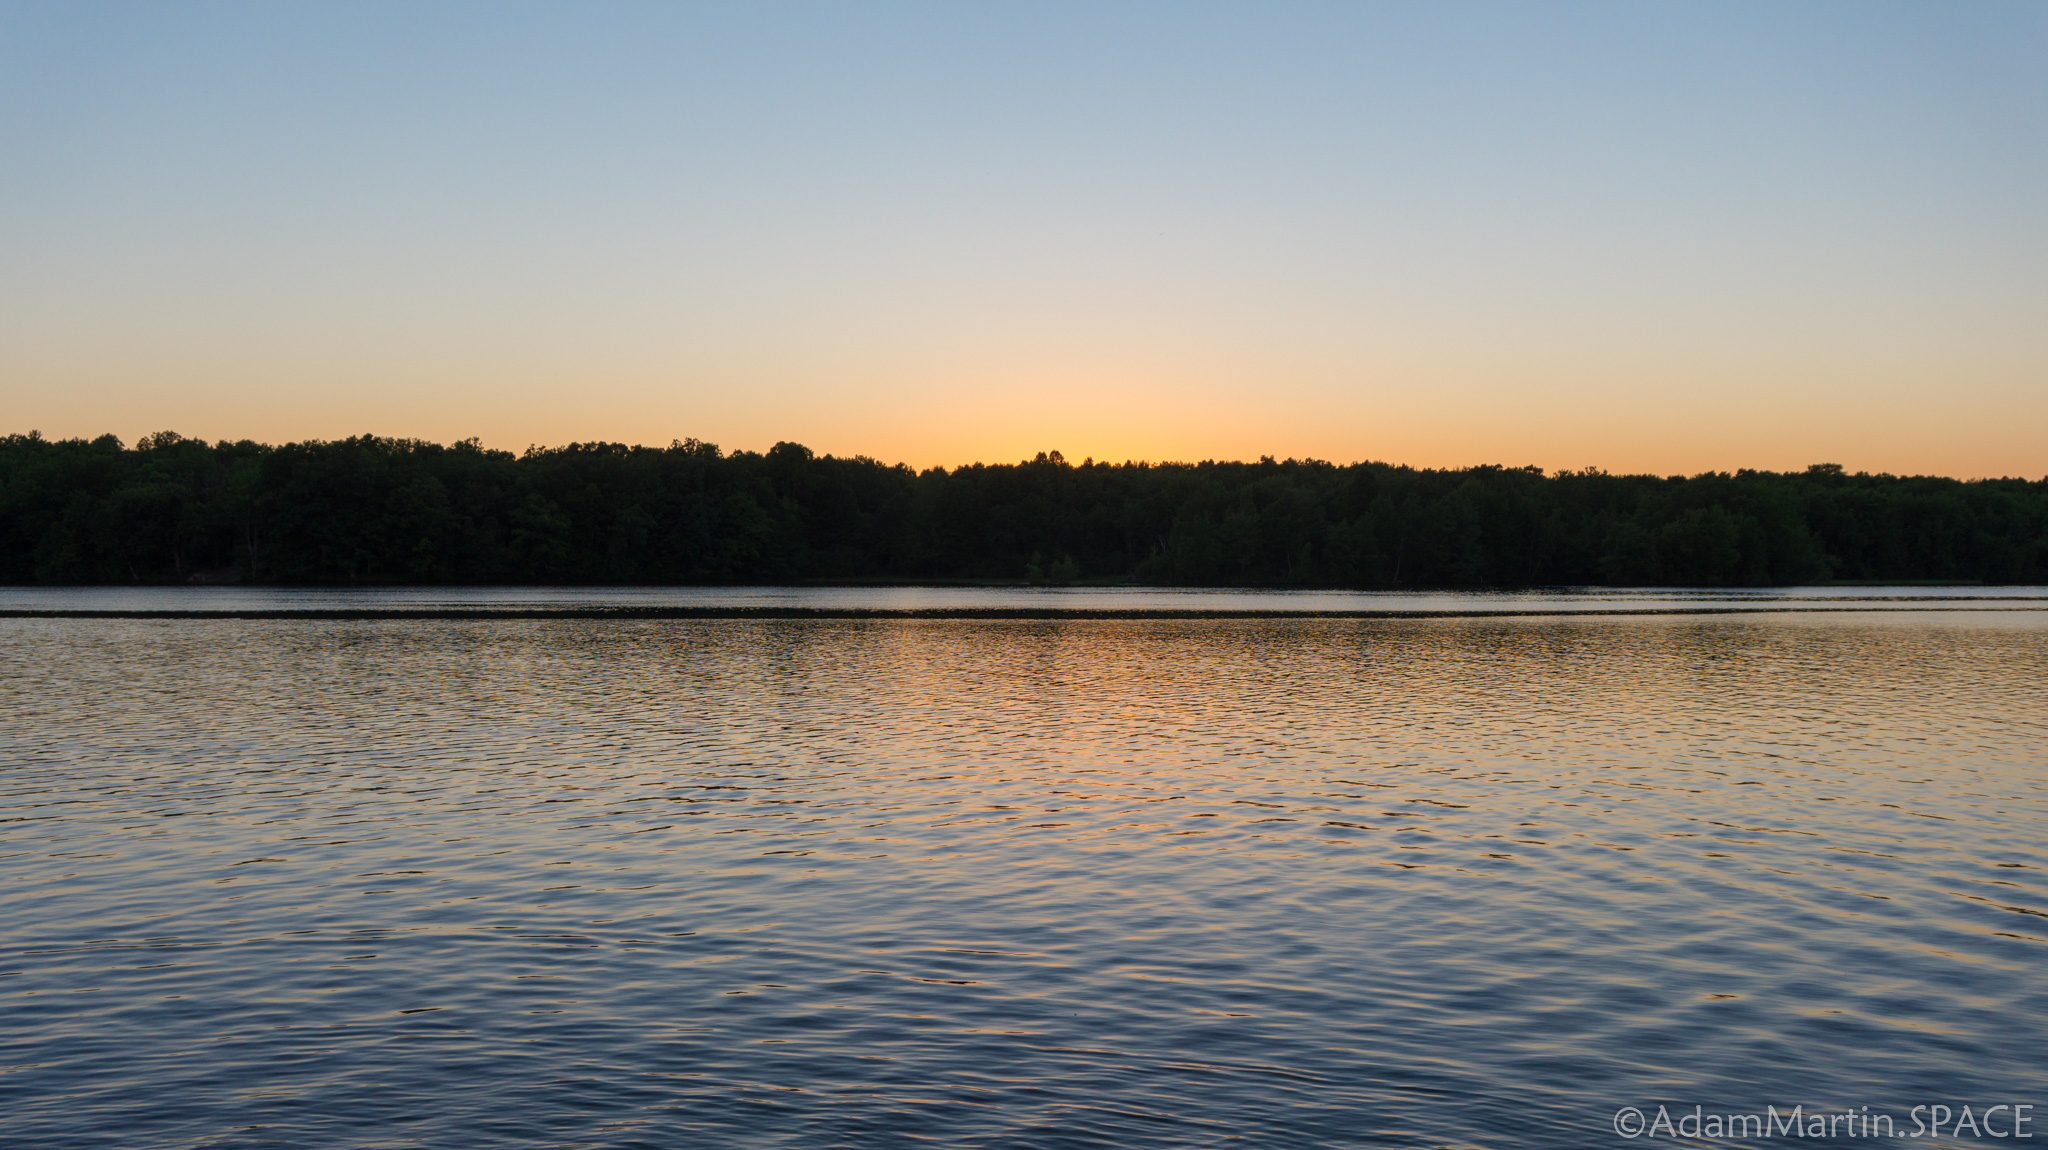 Council Grounds State Park - Sunset across the Wisconsin River